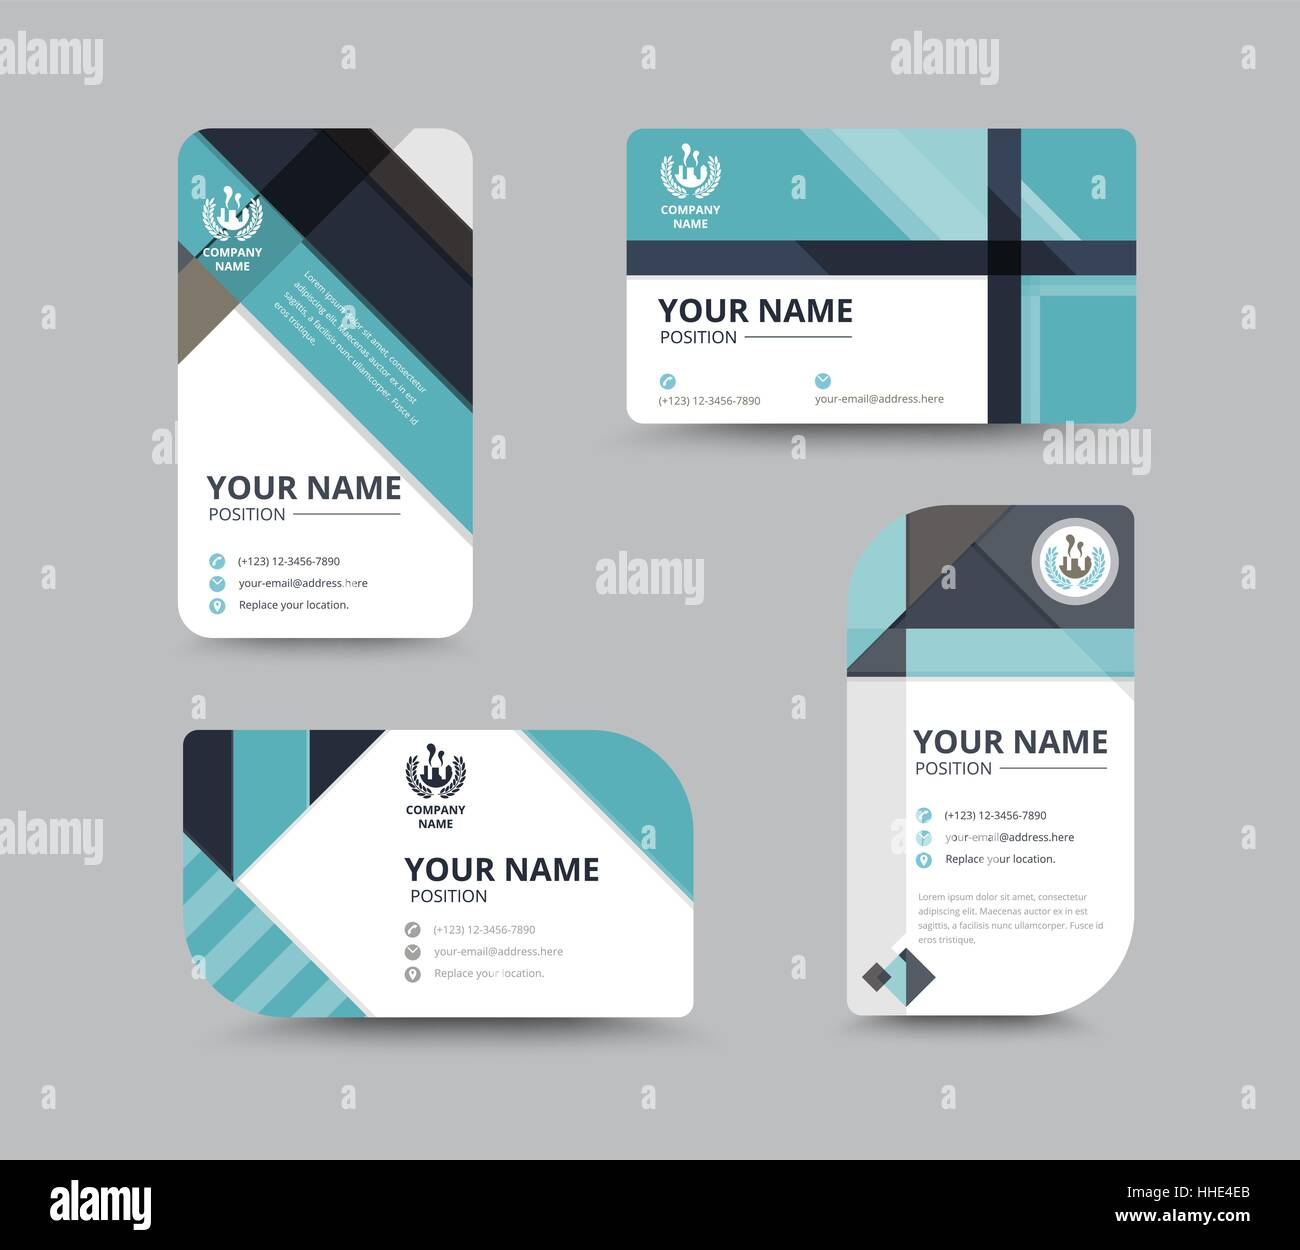 Business greeting card template design introduce card include business greeting card template design introduce card include sample text position vector illustration design m4hsunfo